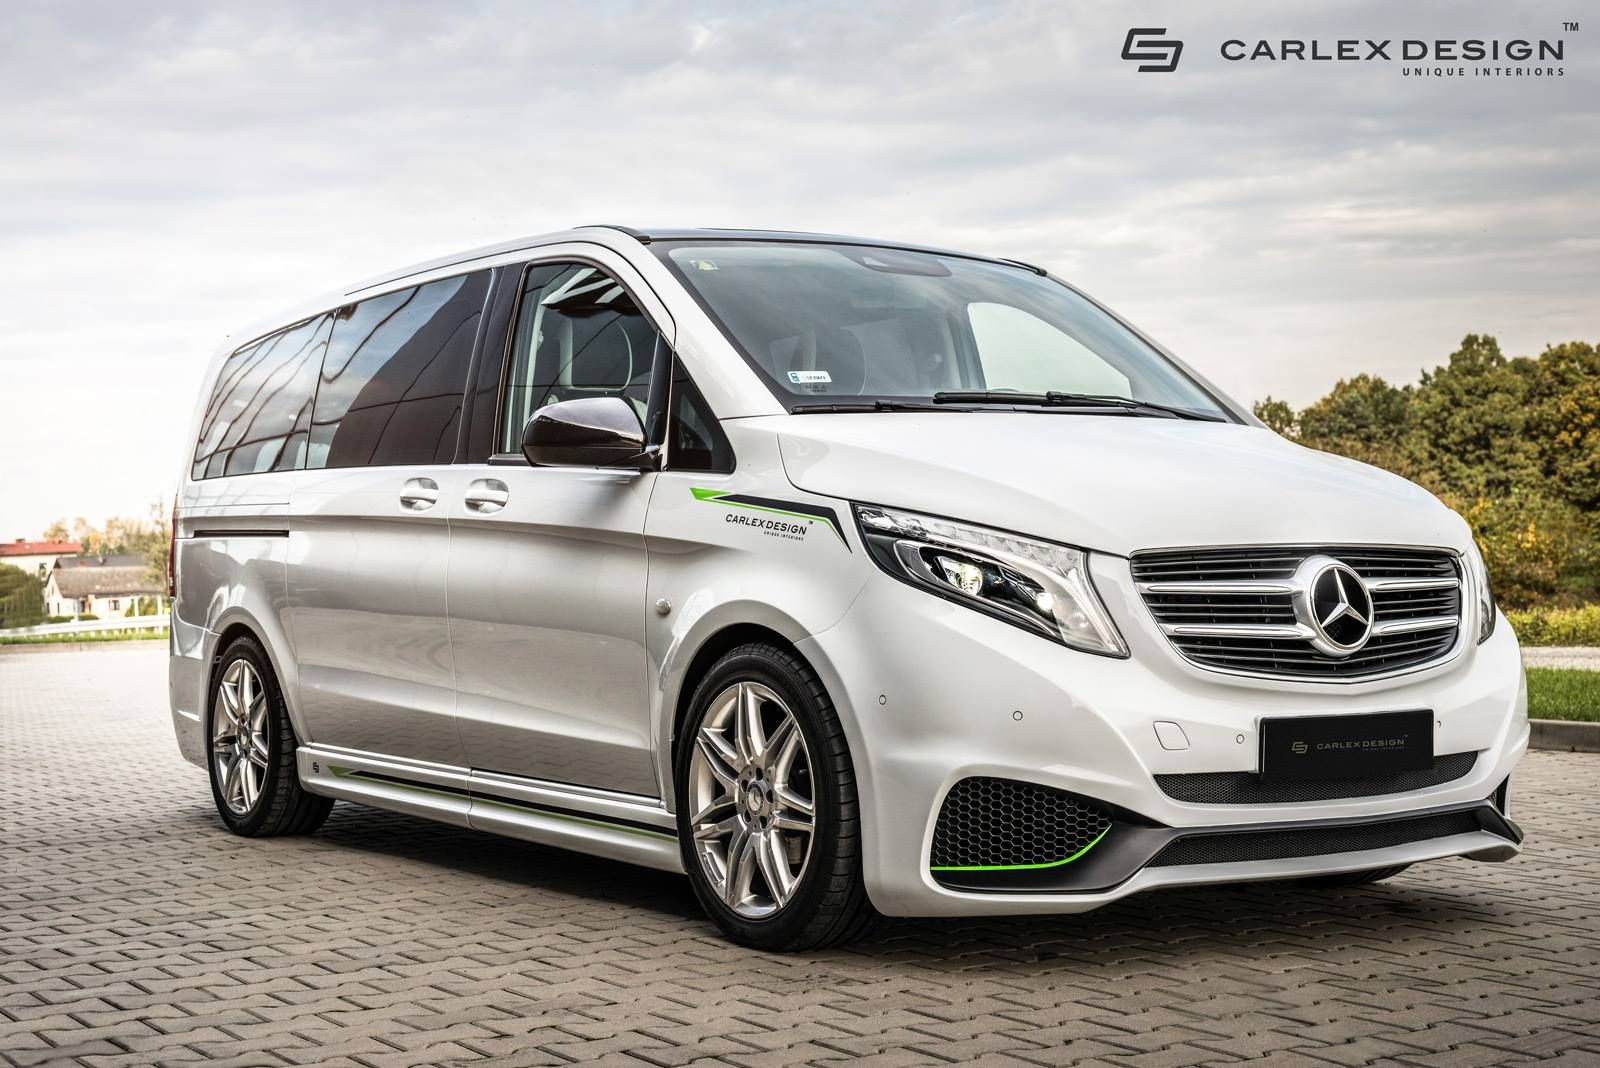 Mercedes v class gets full treatment from carlex design - Carlex Design Gives Mercedes Benz Vito A More Aggressive Look Outside And In Mb V250 Hartman Pinterest Mercedes Benz Vito Mercedes Benz And Top Car